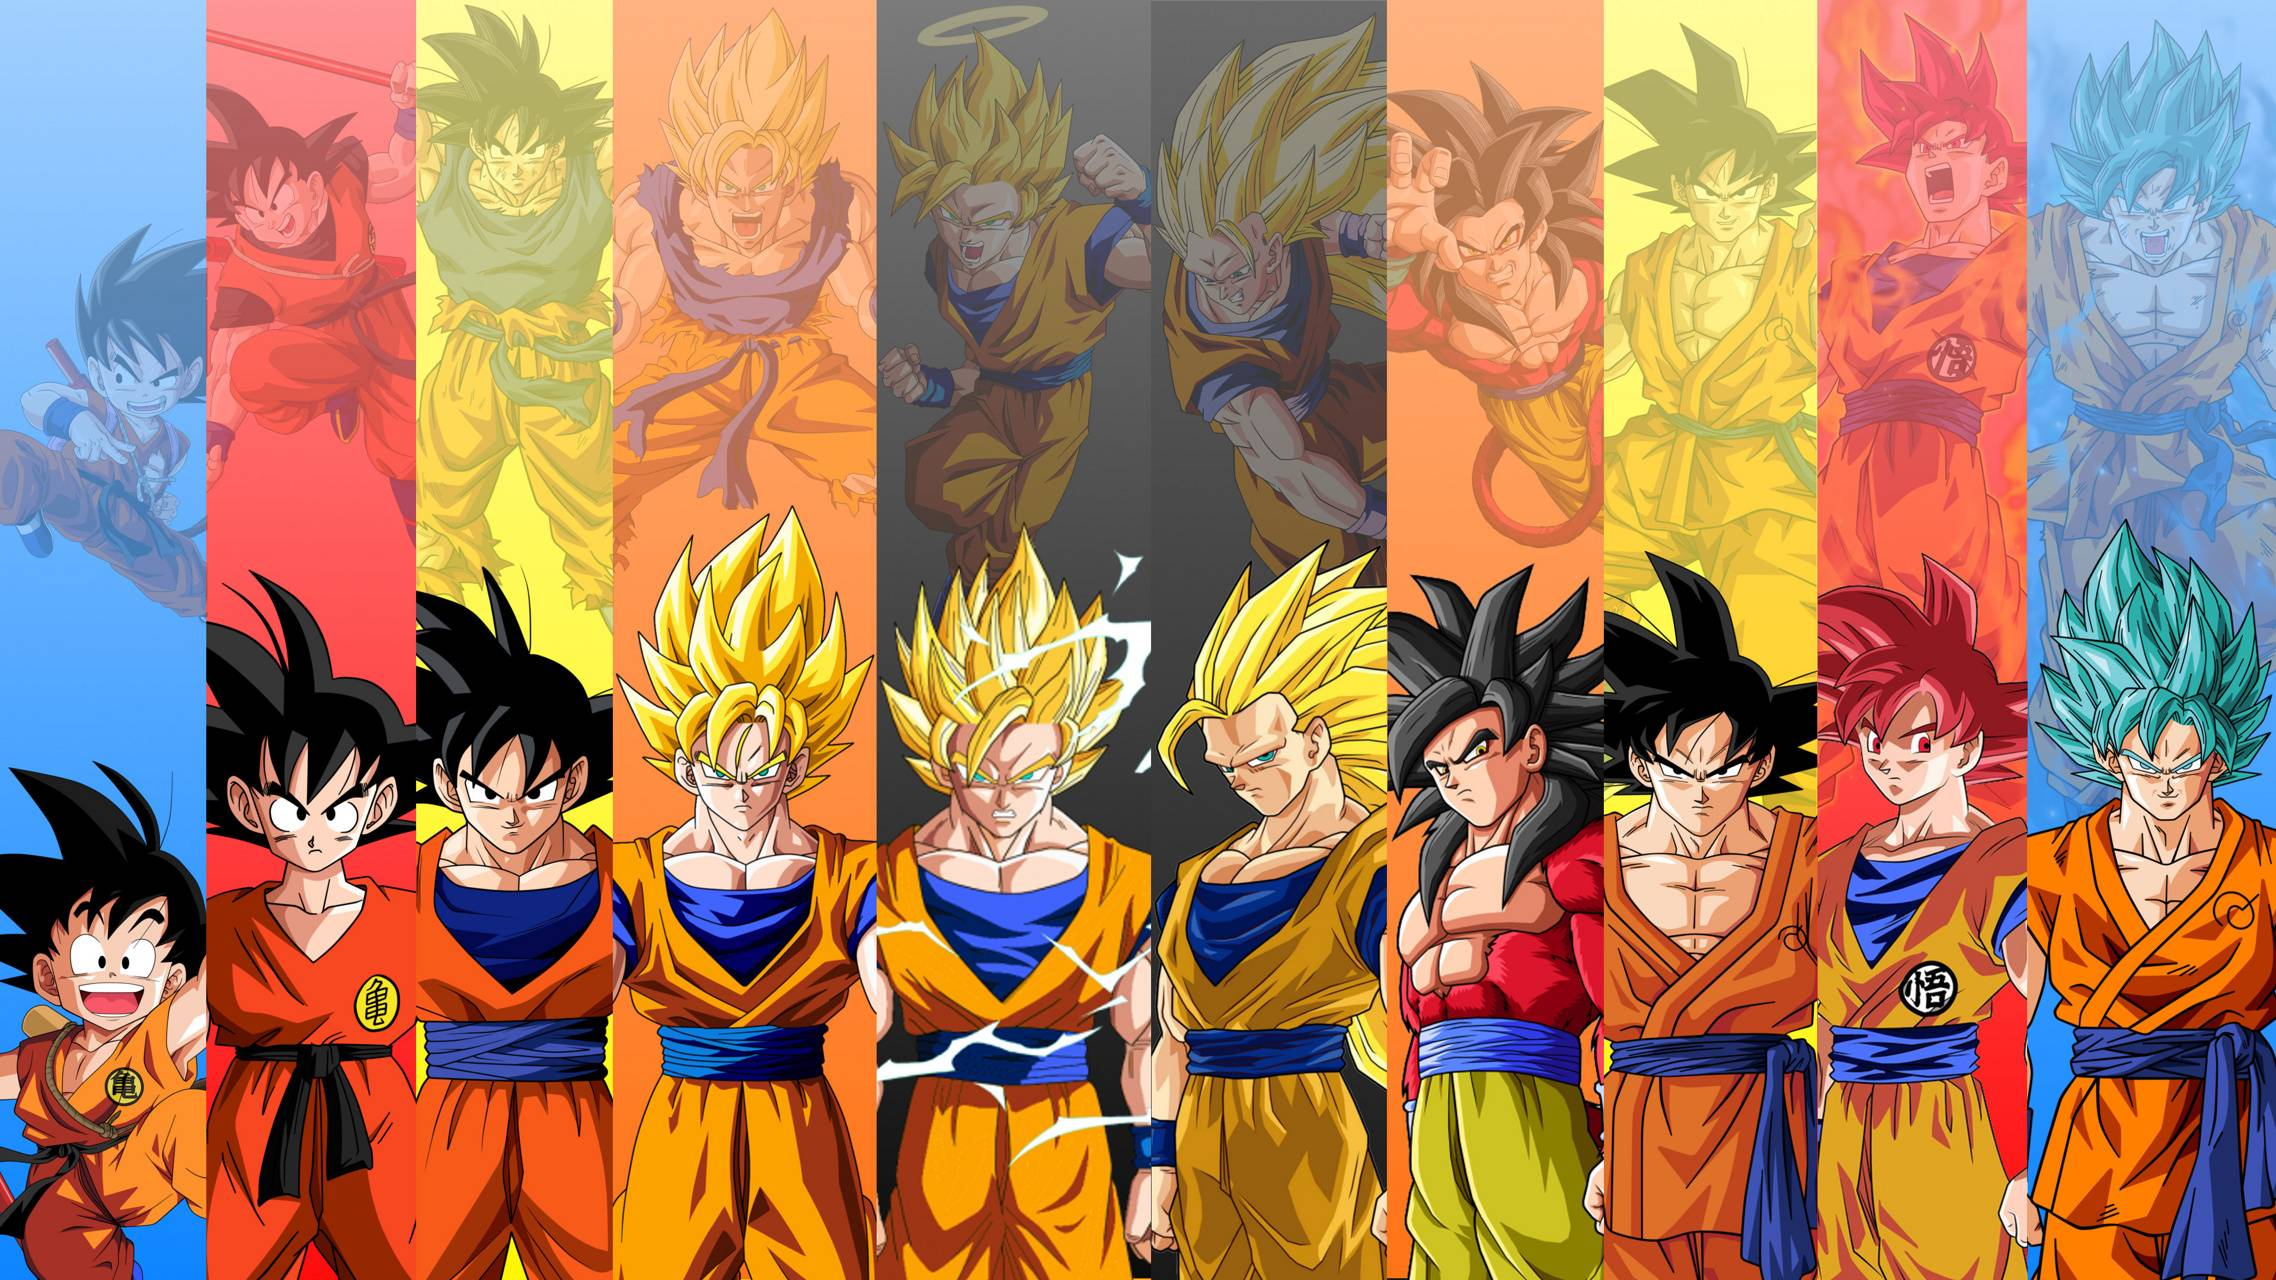 All forms of Goku